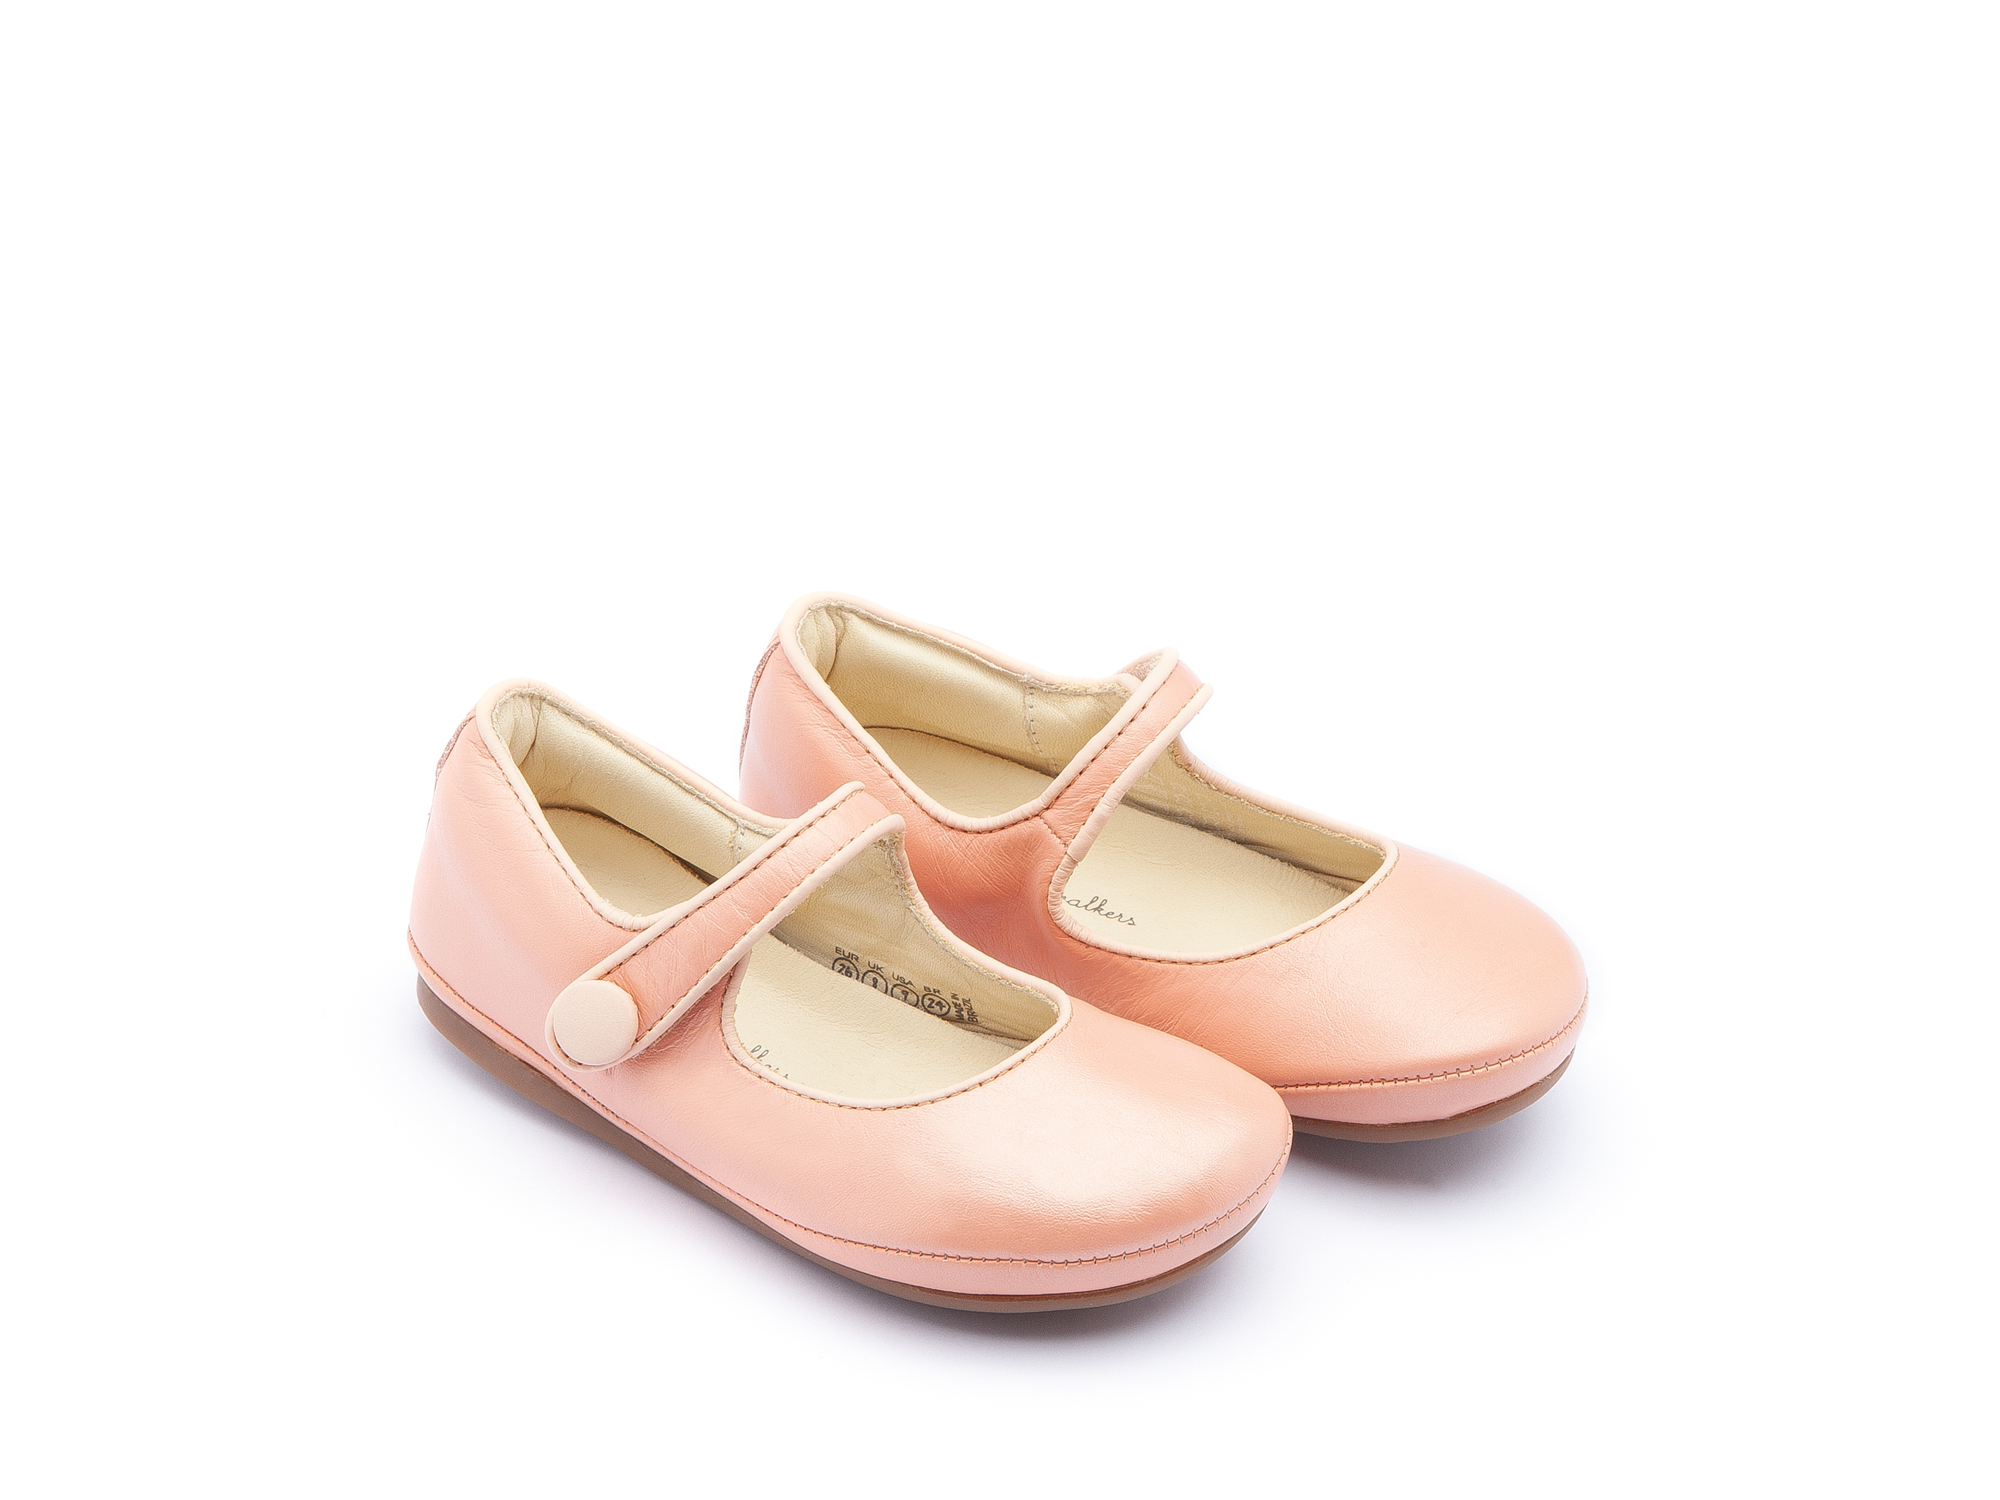 Boneca Little Gavotte Flamingo/ Papaya Cream Toddler 2 à 4 anos - 0